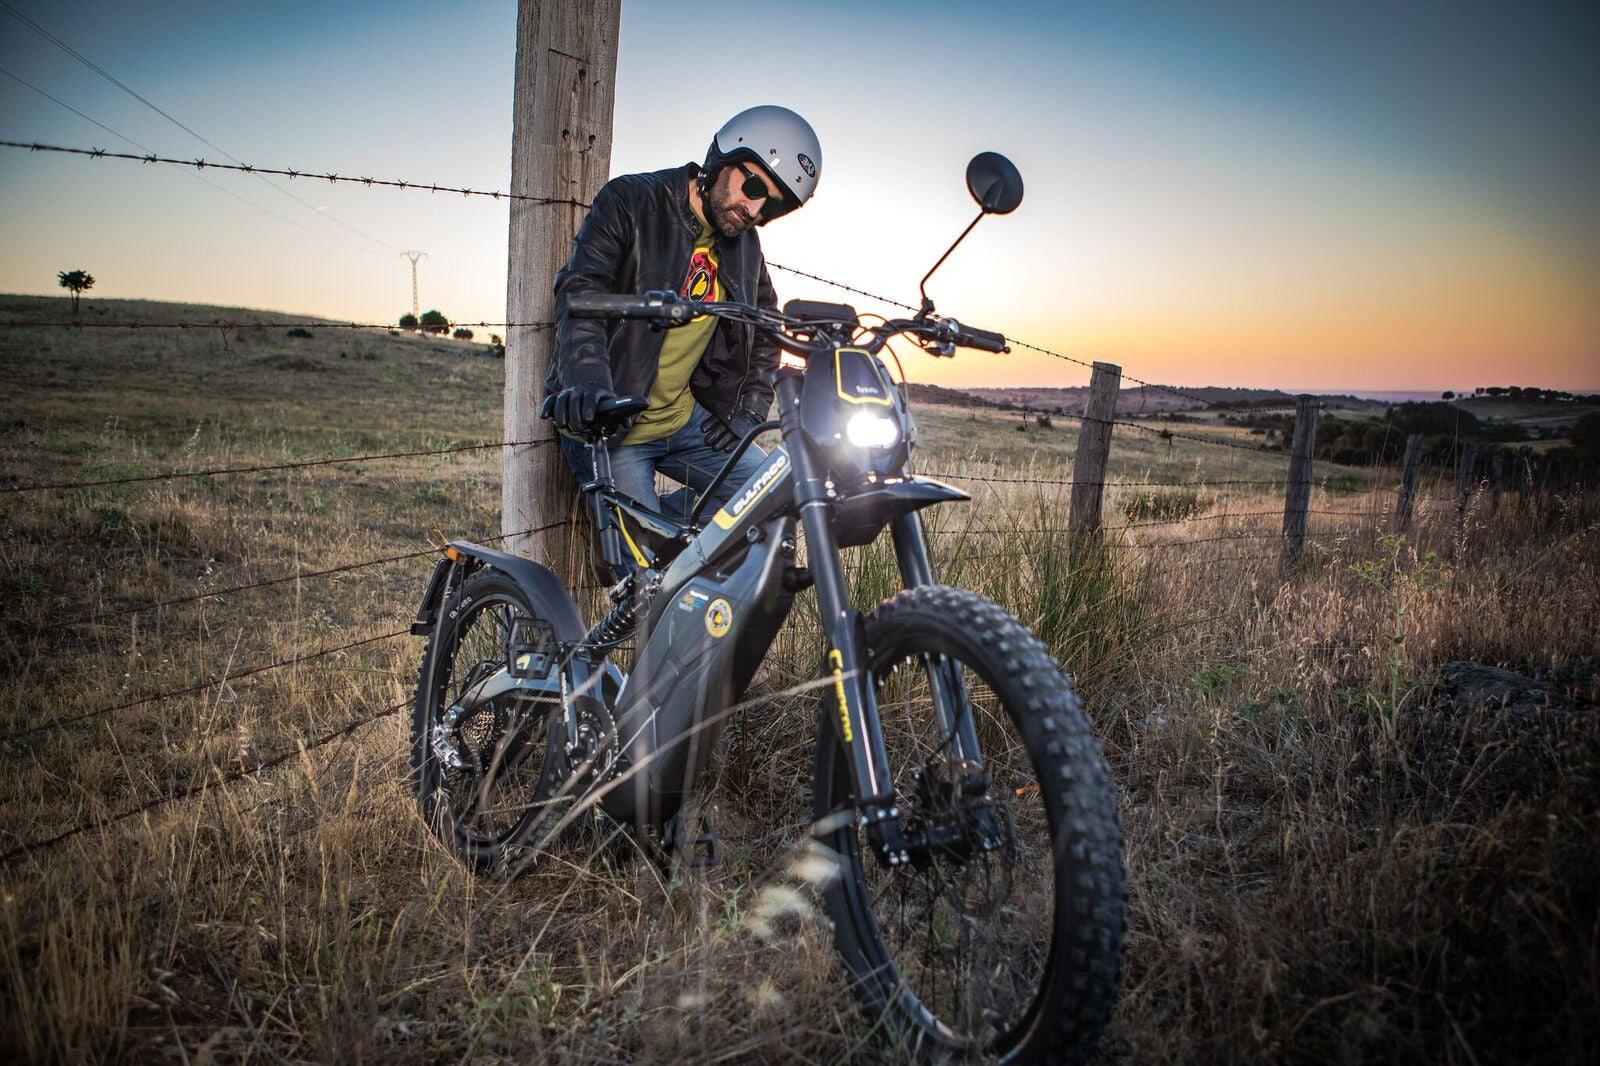 Bultaco Brinco C Restyle Night Time Shoot 4